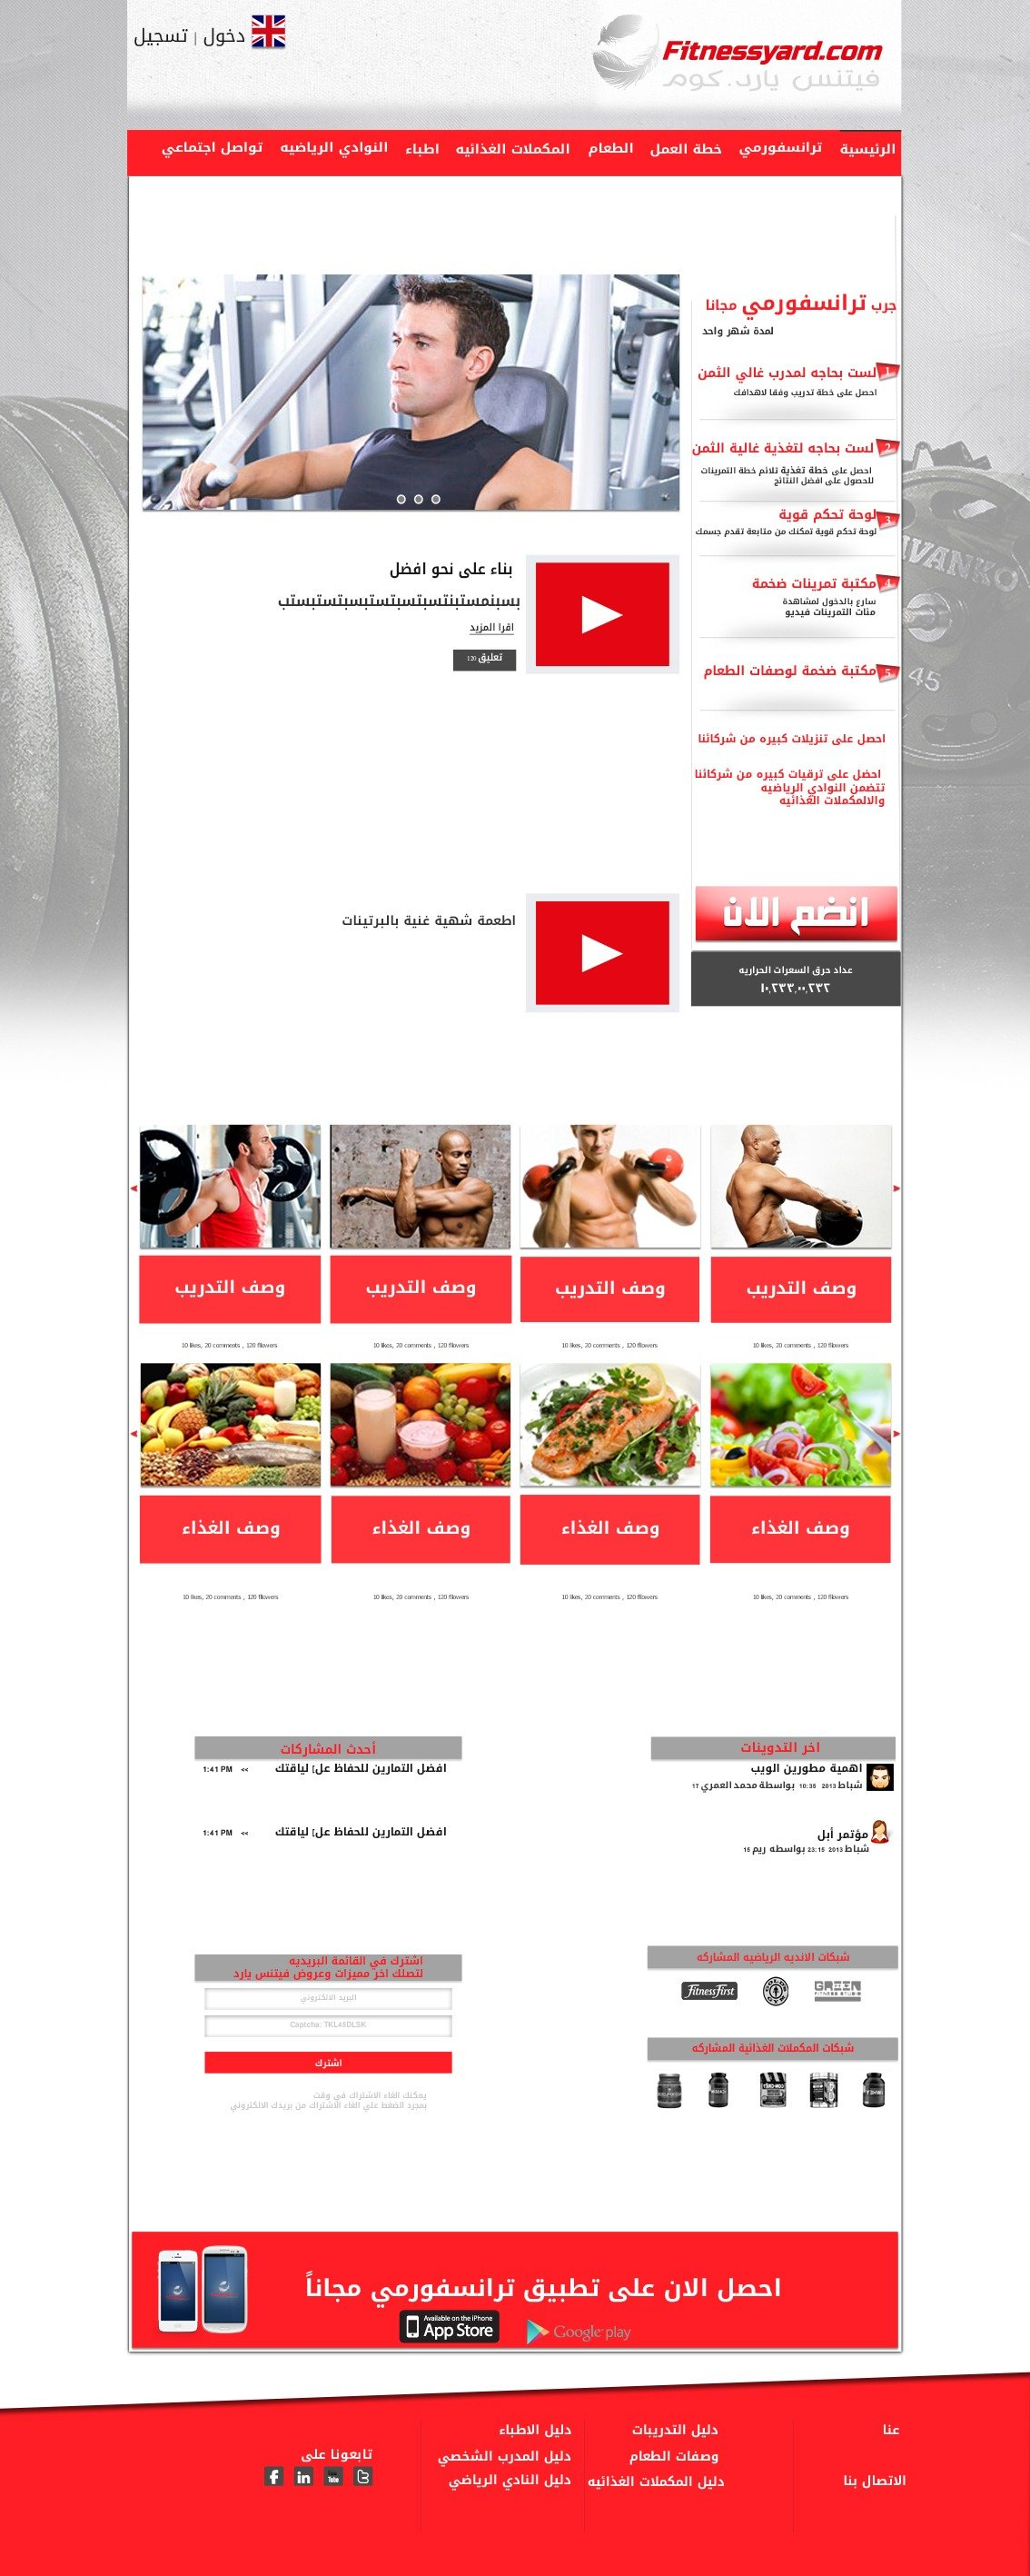 fitnessyard arabic website design